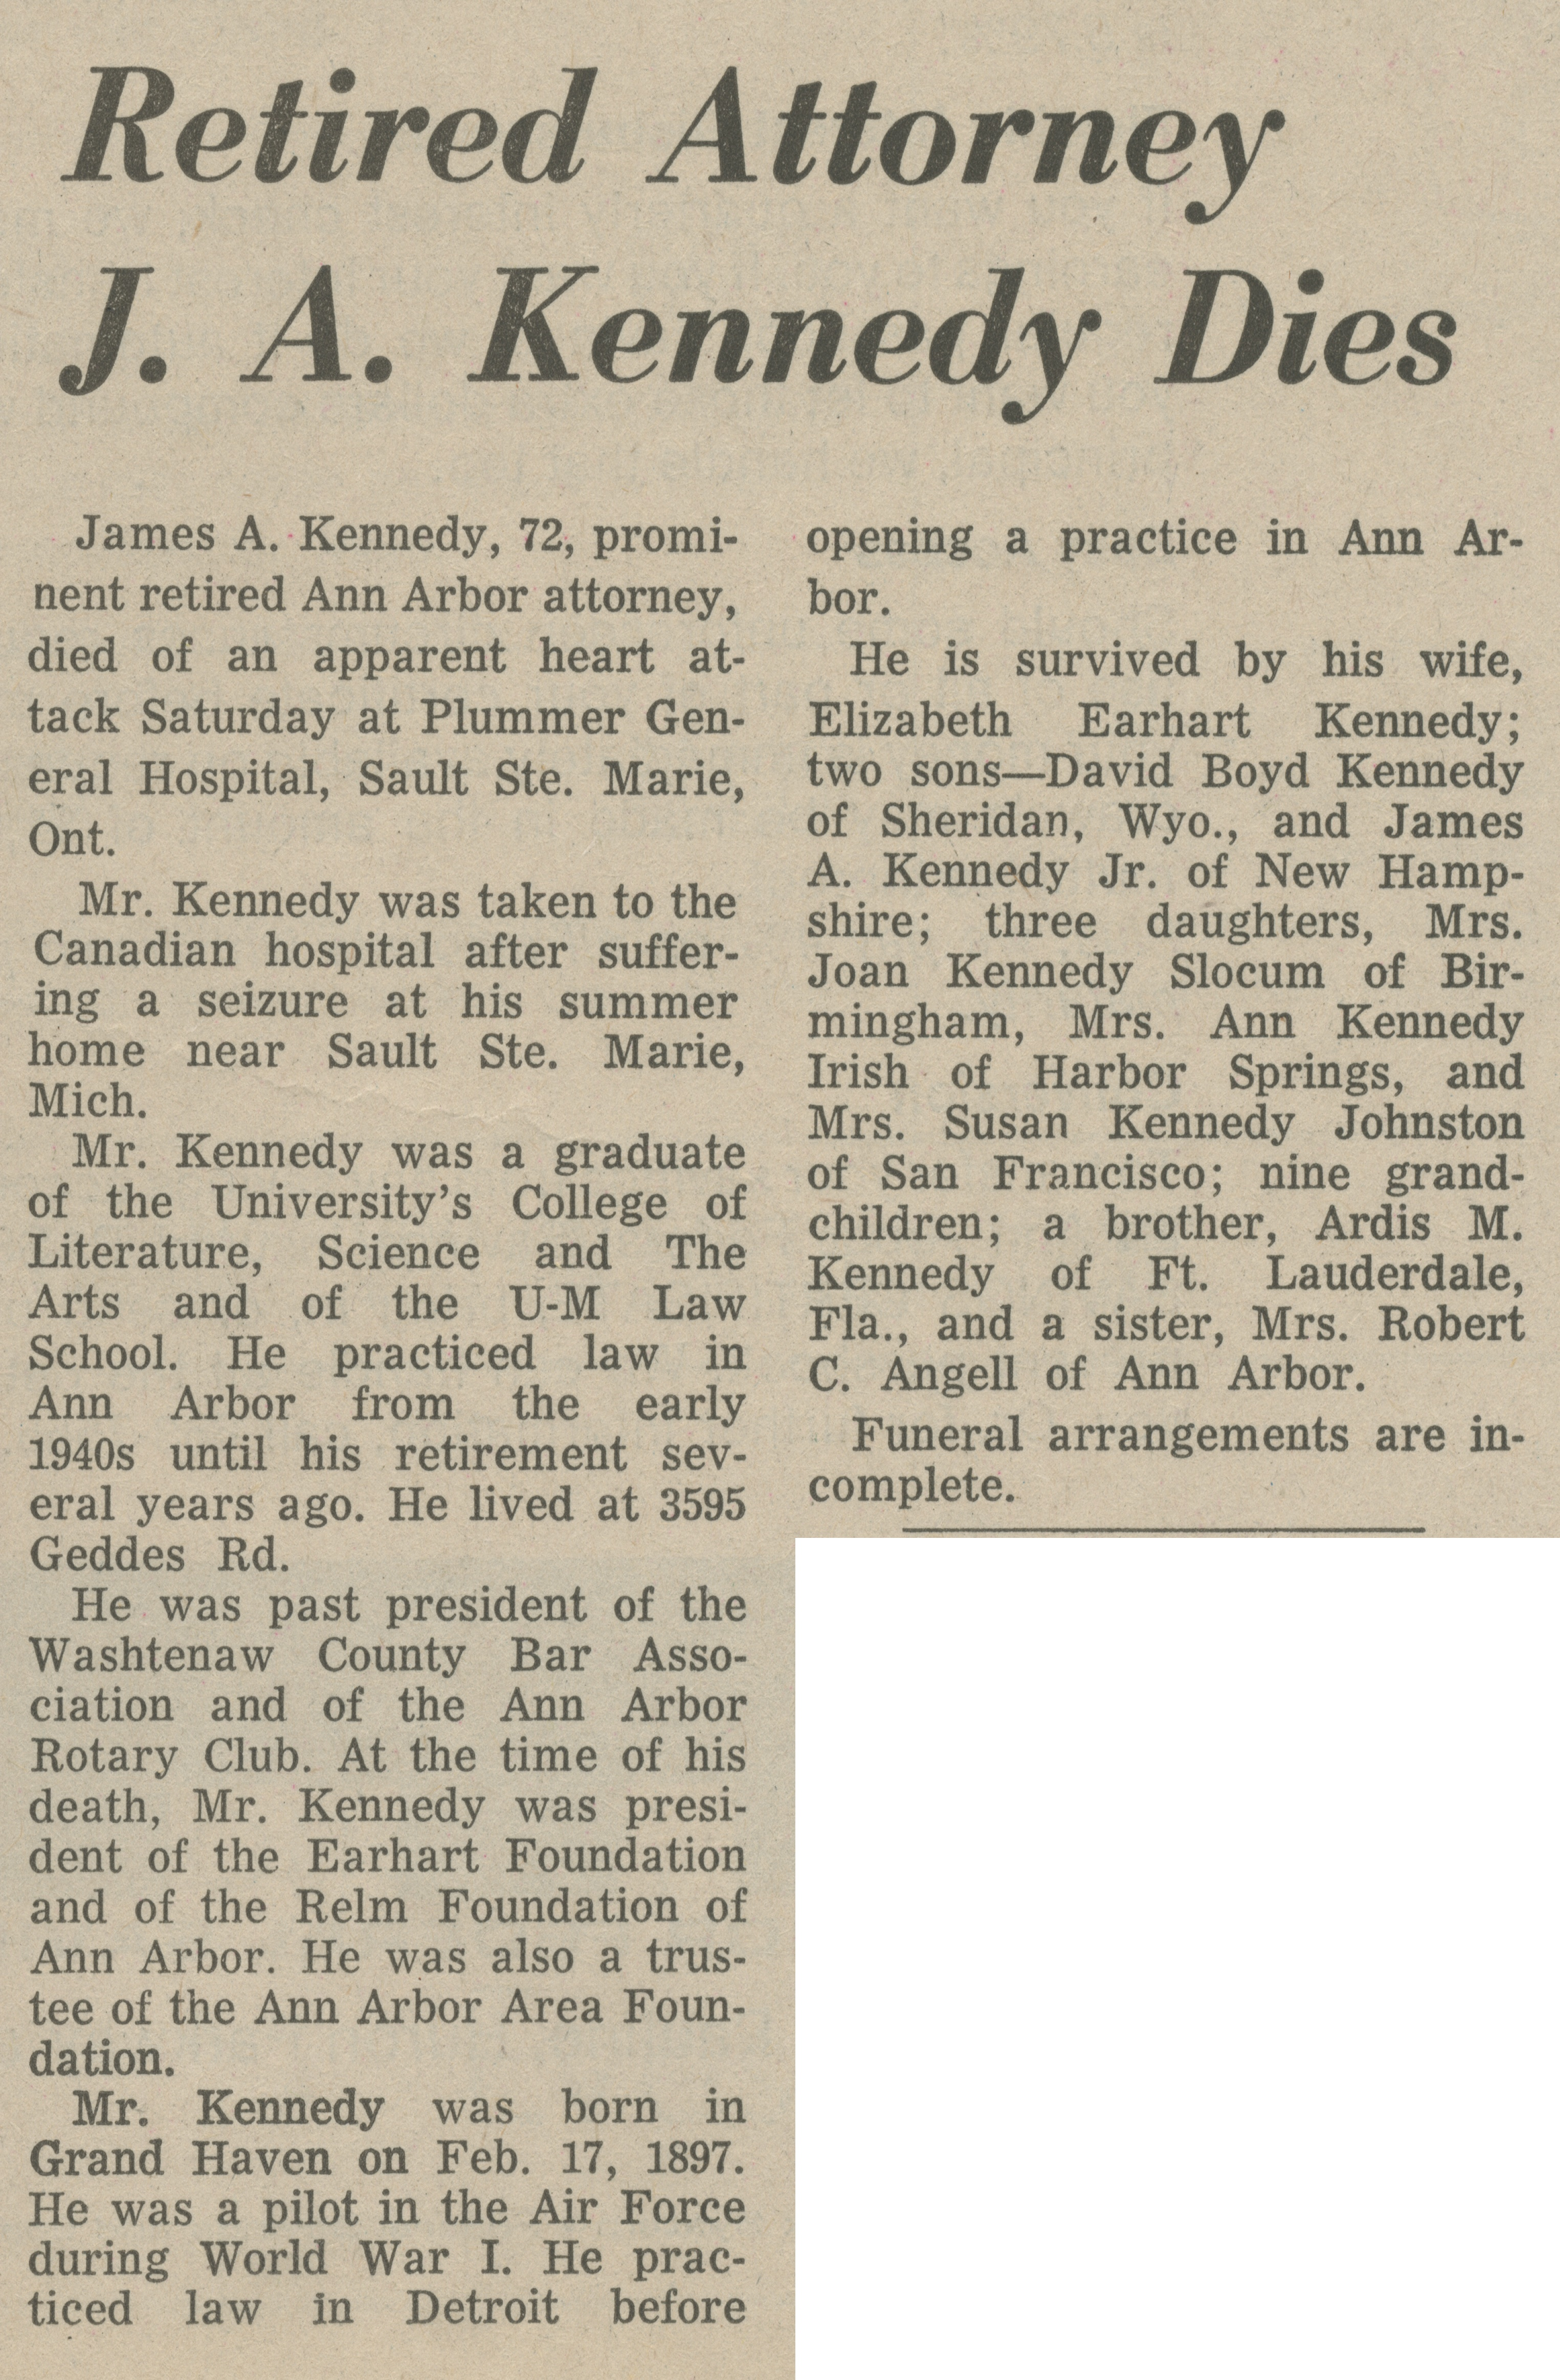 Retired Attorney J. A. Kennedy Dies image